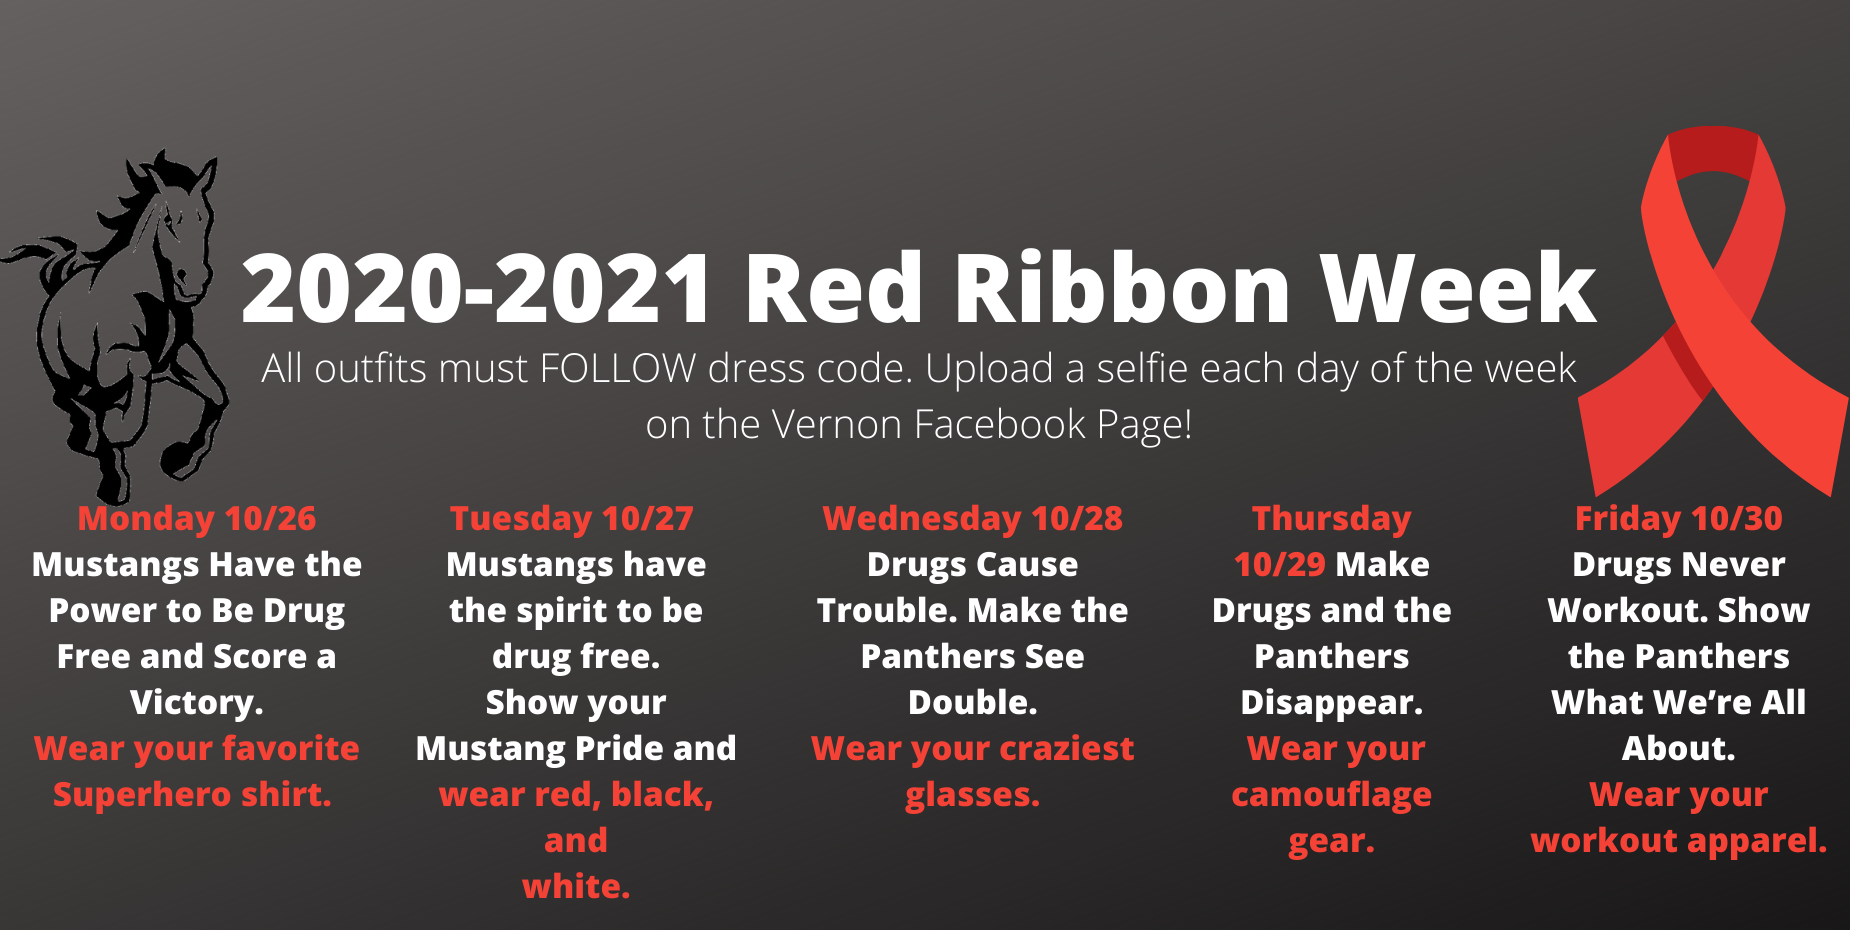 image shows running mustang and red ribbon week information